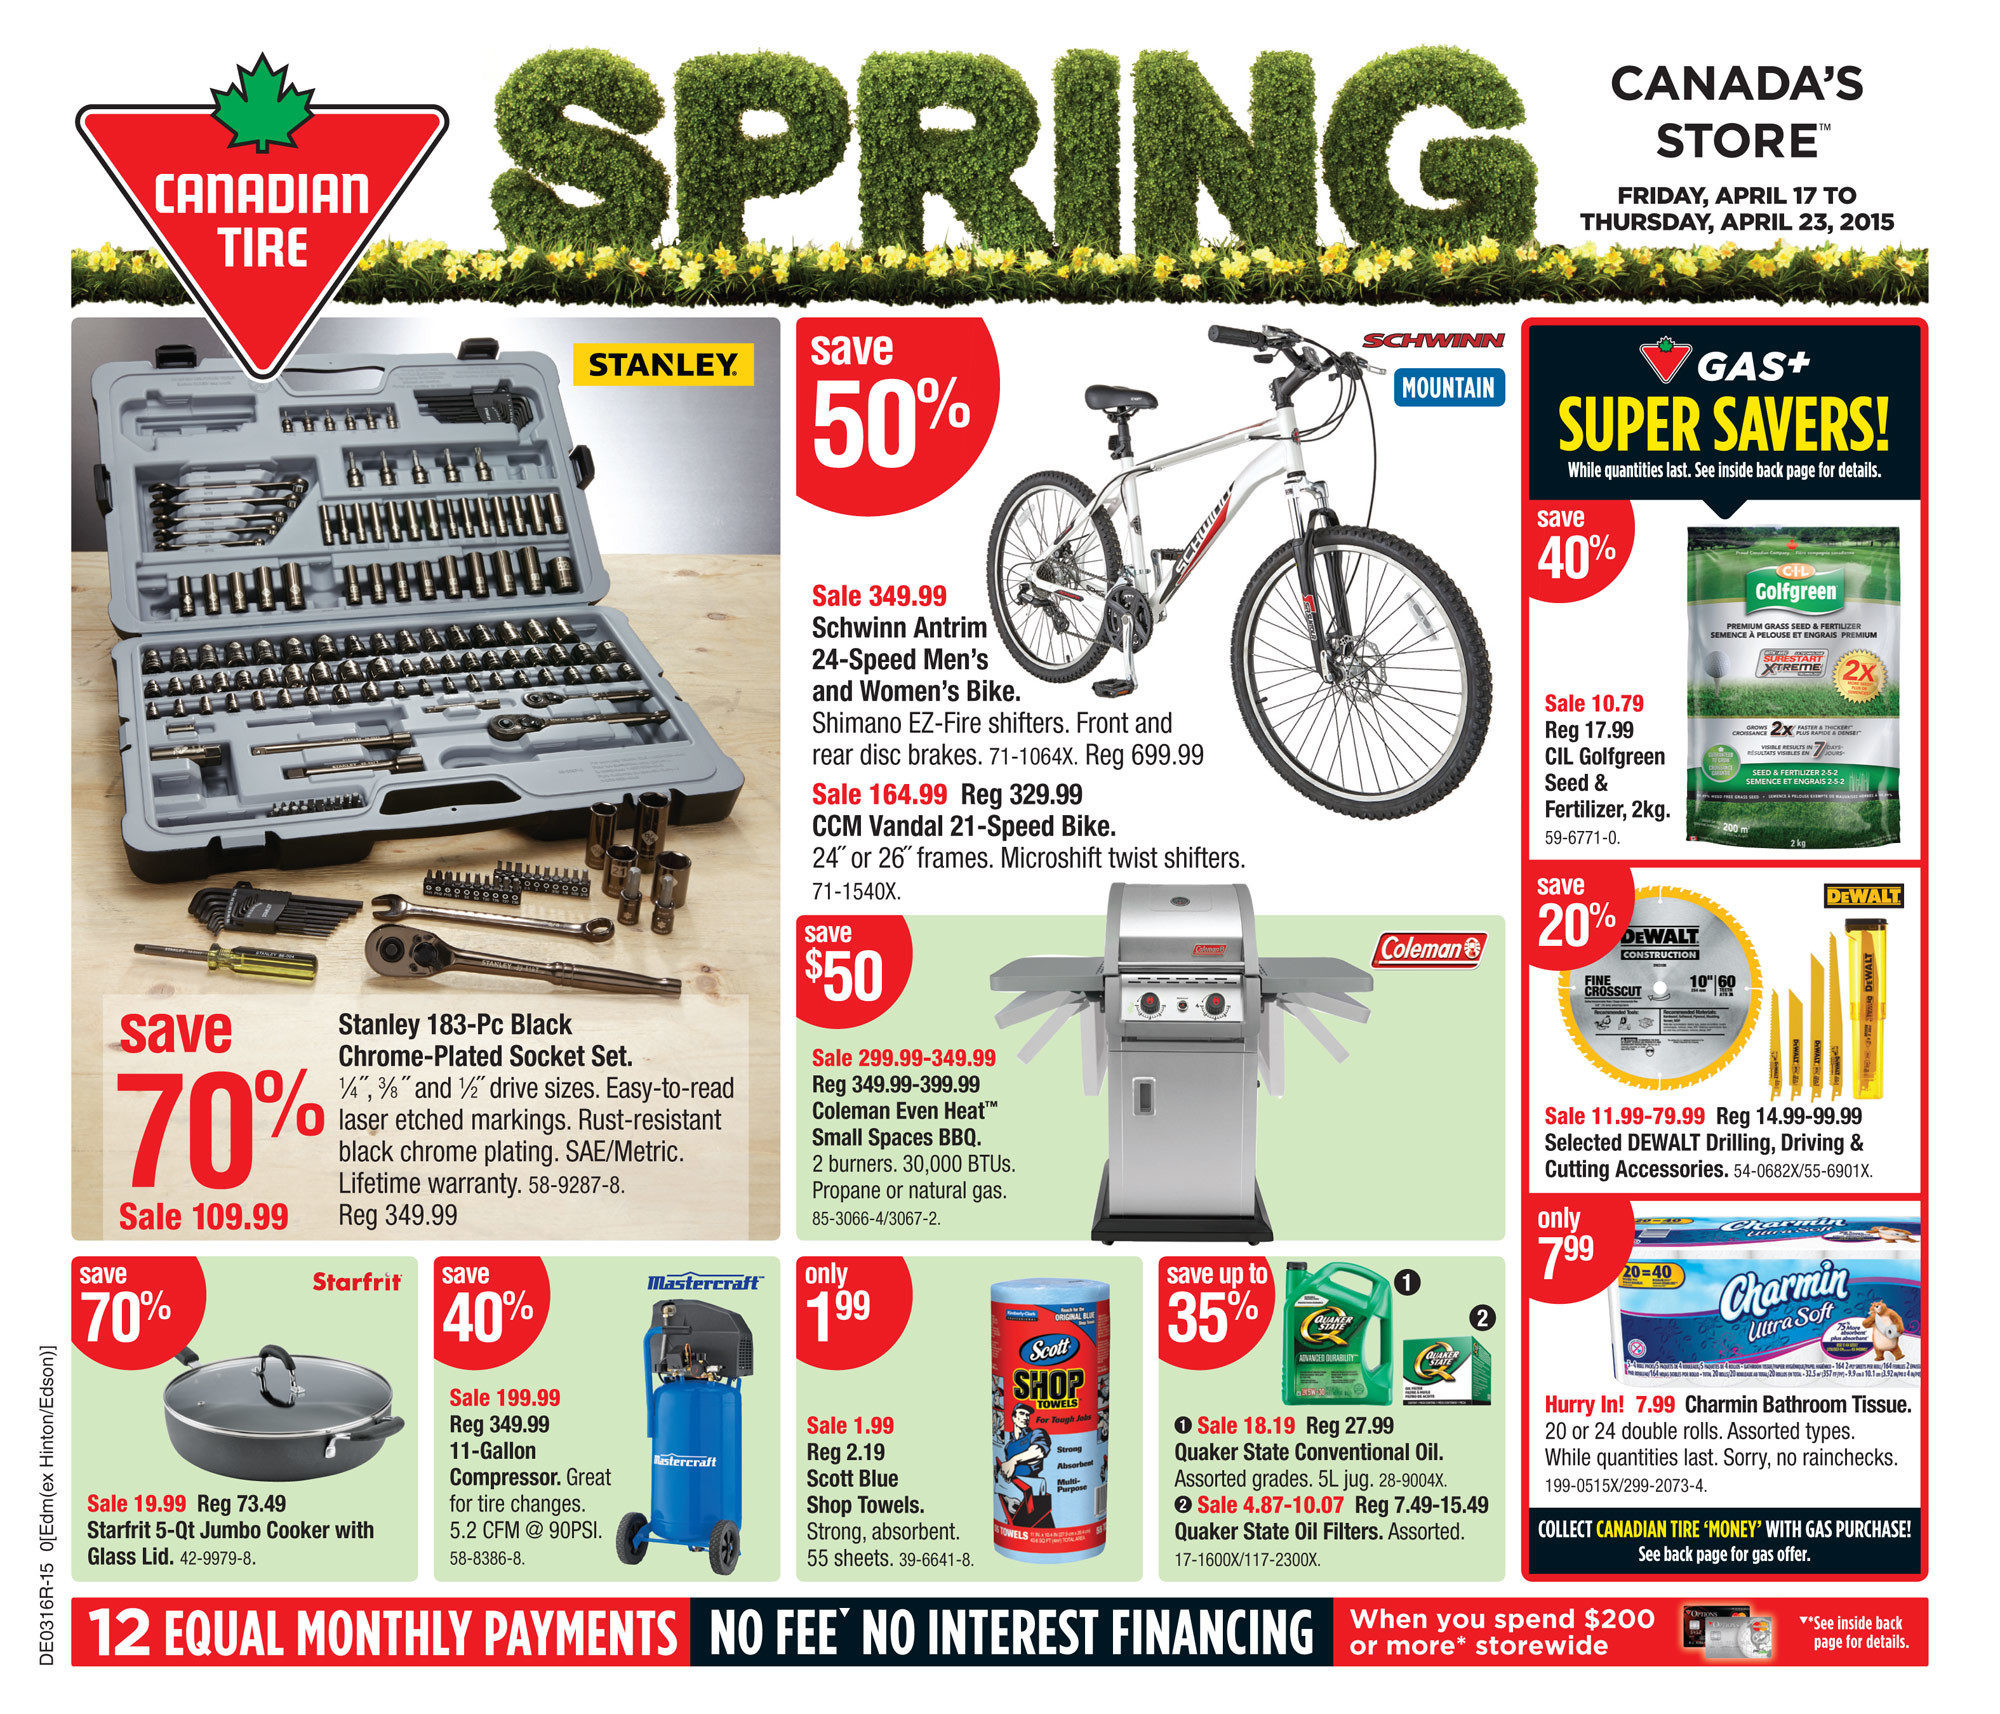 Canadian Tire Weekly Flyer - Weekly Flyer - Apr 17 – 23 - RedFlagDeals.com